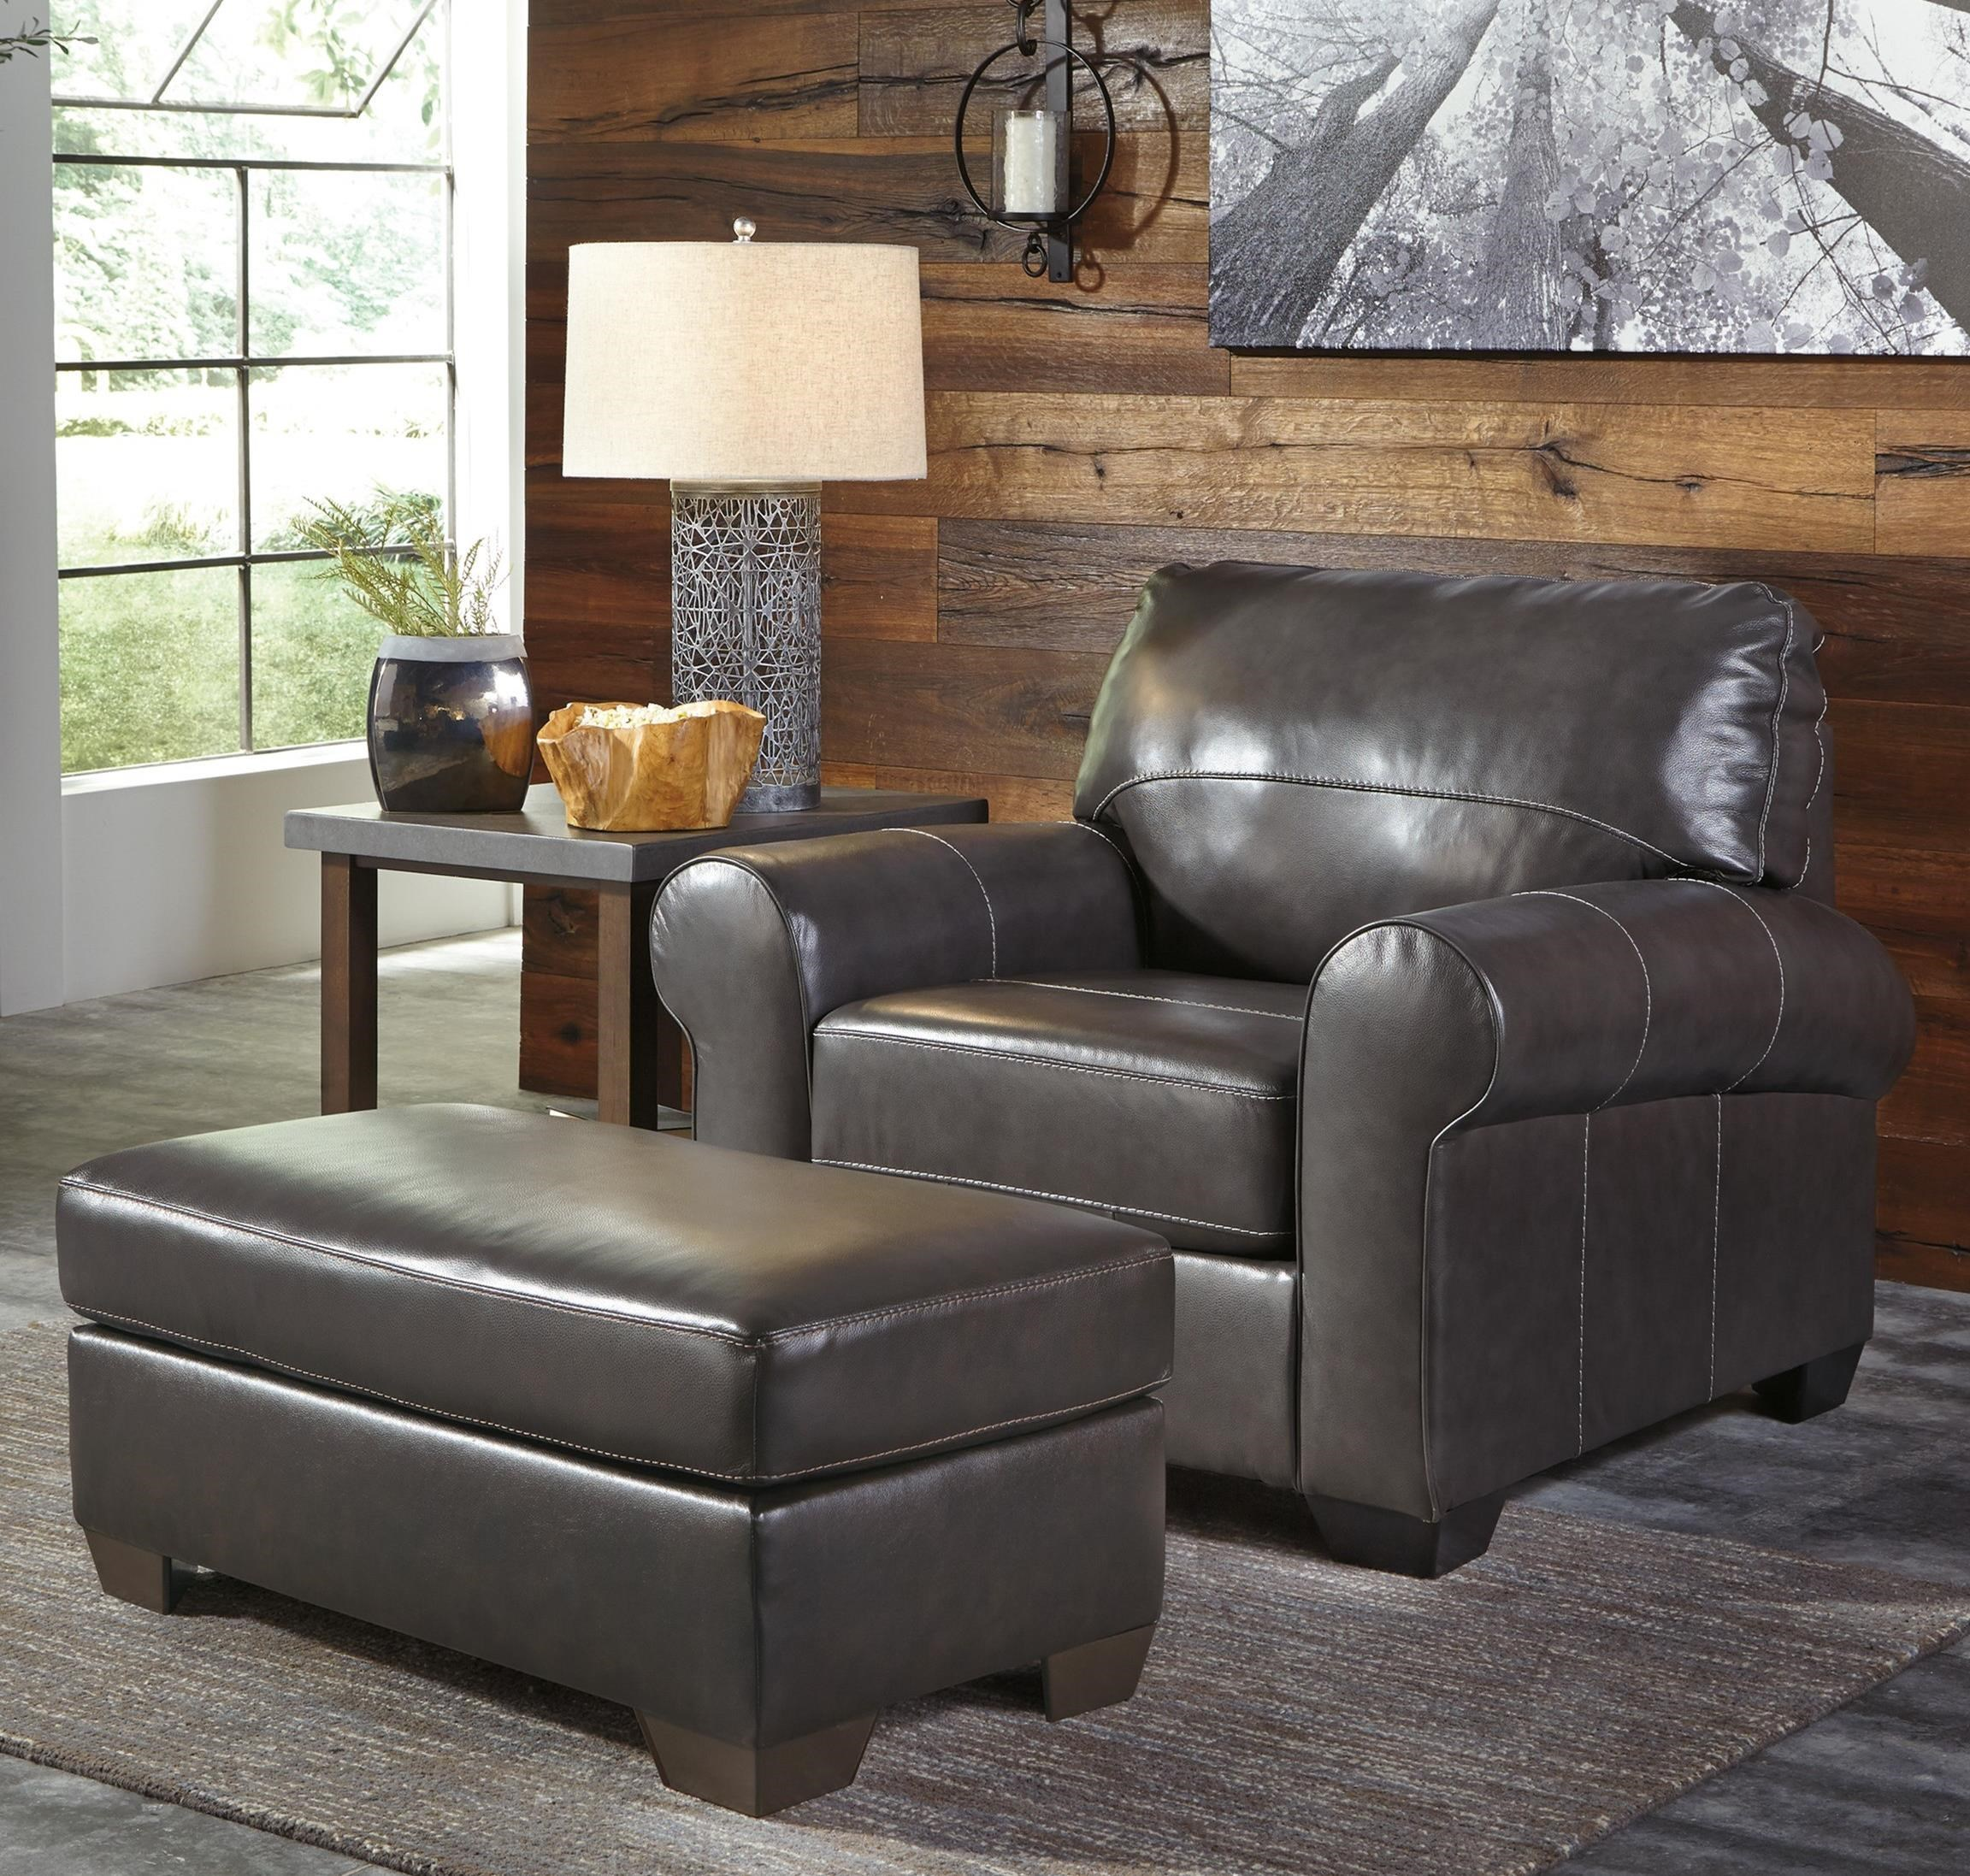 Signature Design by Ashley Canterelli Chair & Ottoman - Item Number: 9800320+14